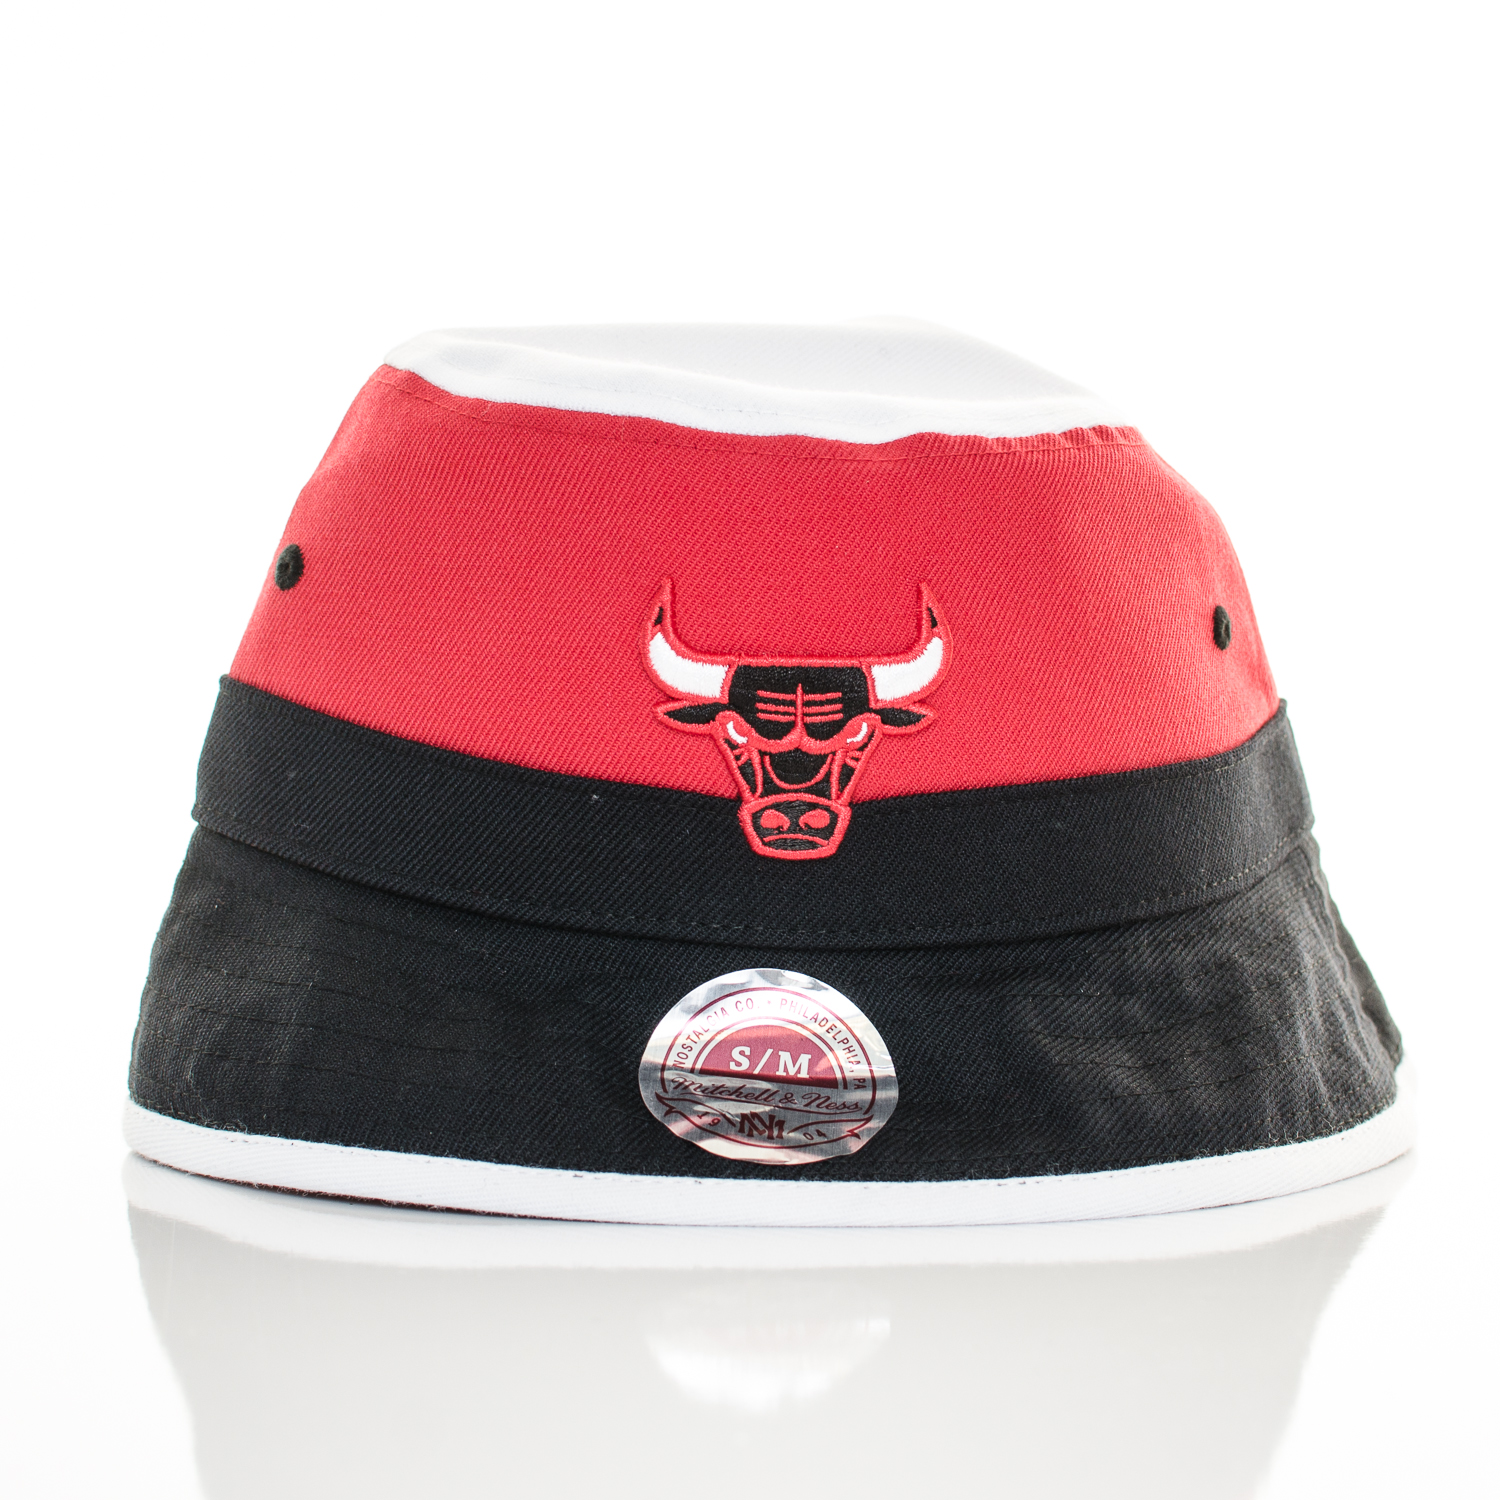 Klobúk Mitchell & Ness Chicago Bulls Bucket Black Red White S/M